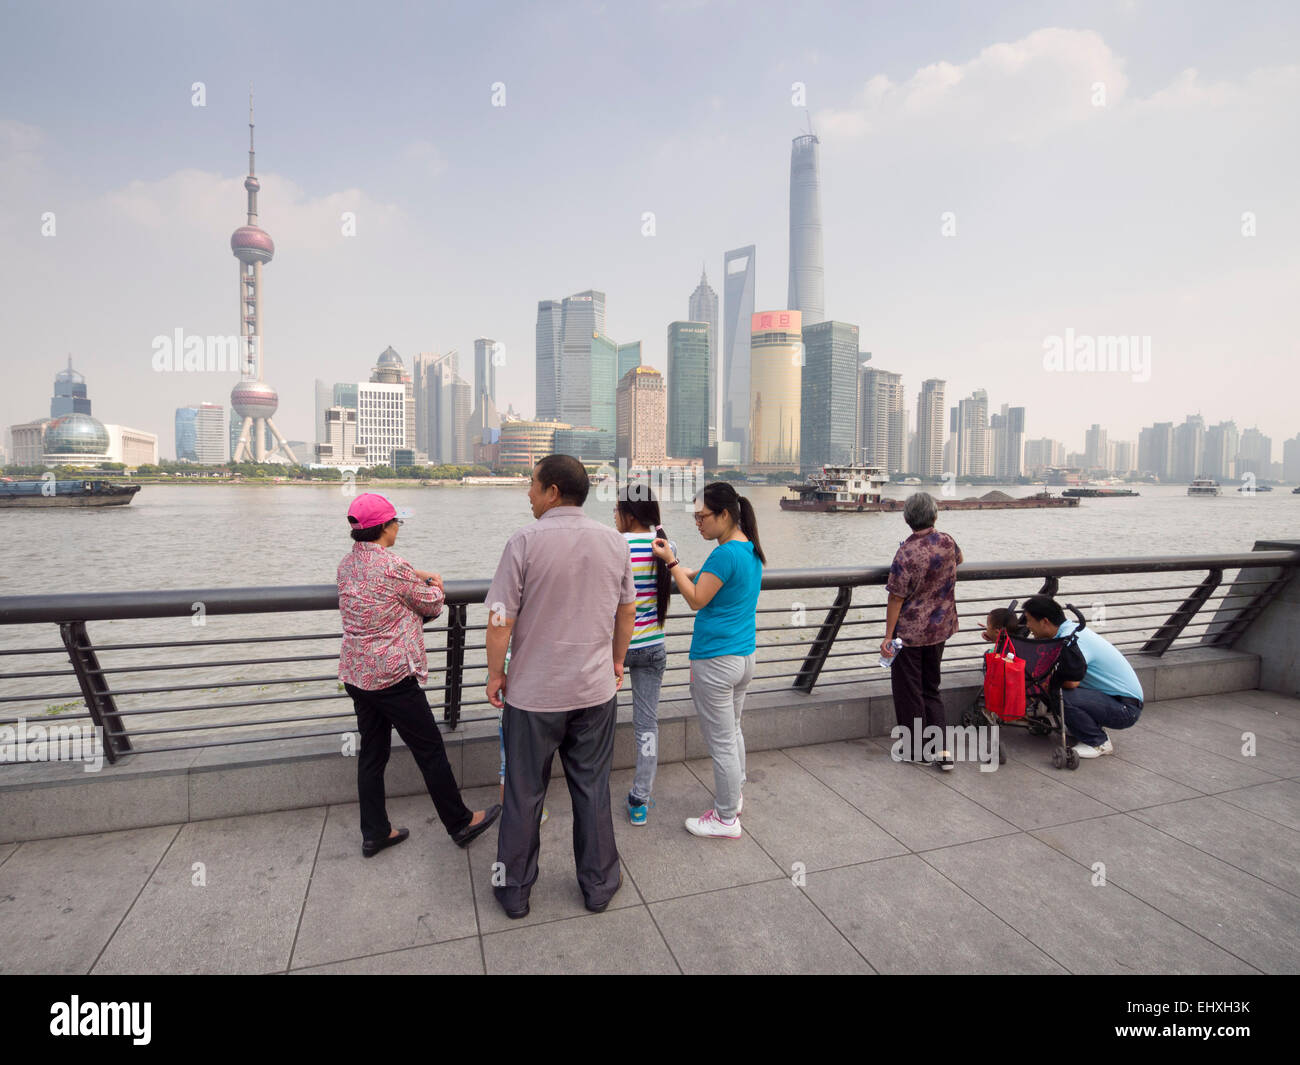 View of the Oriental Pearl Tower and skyscrapers of the Pudong financial district skyline from the Bund in Shanghai, - Stock Image